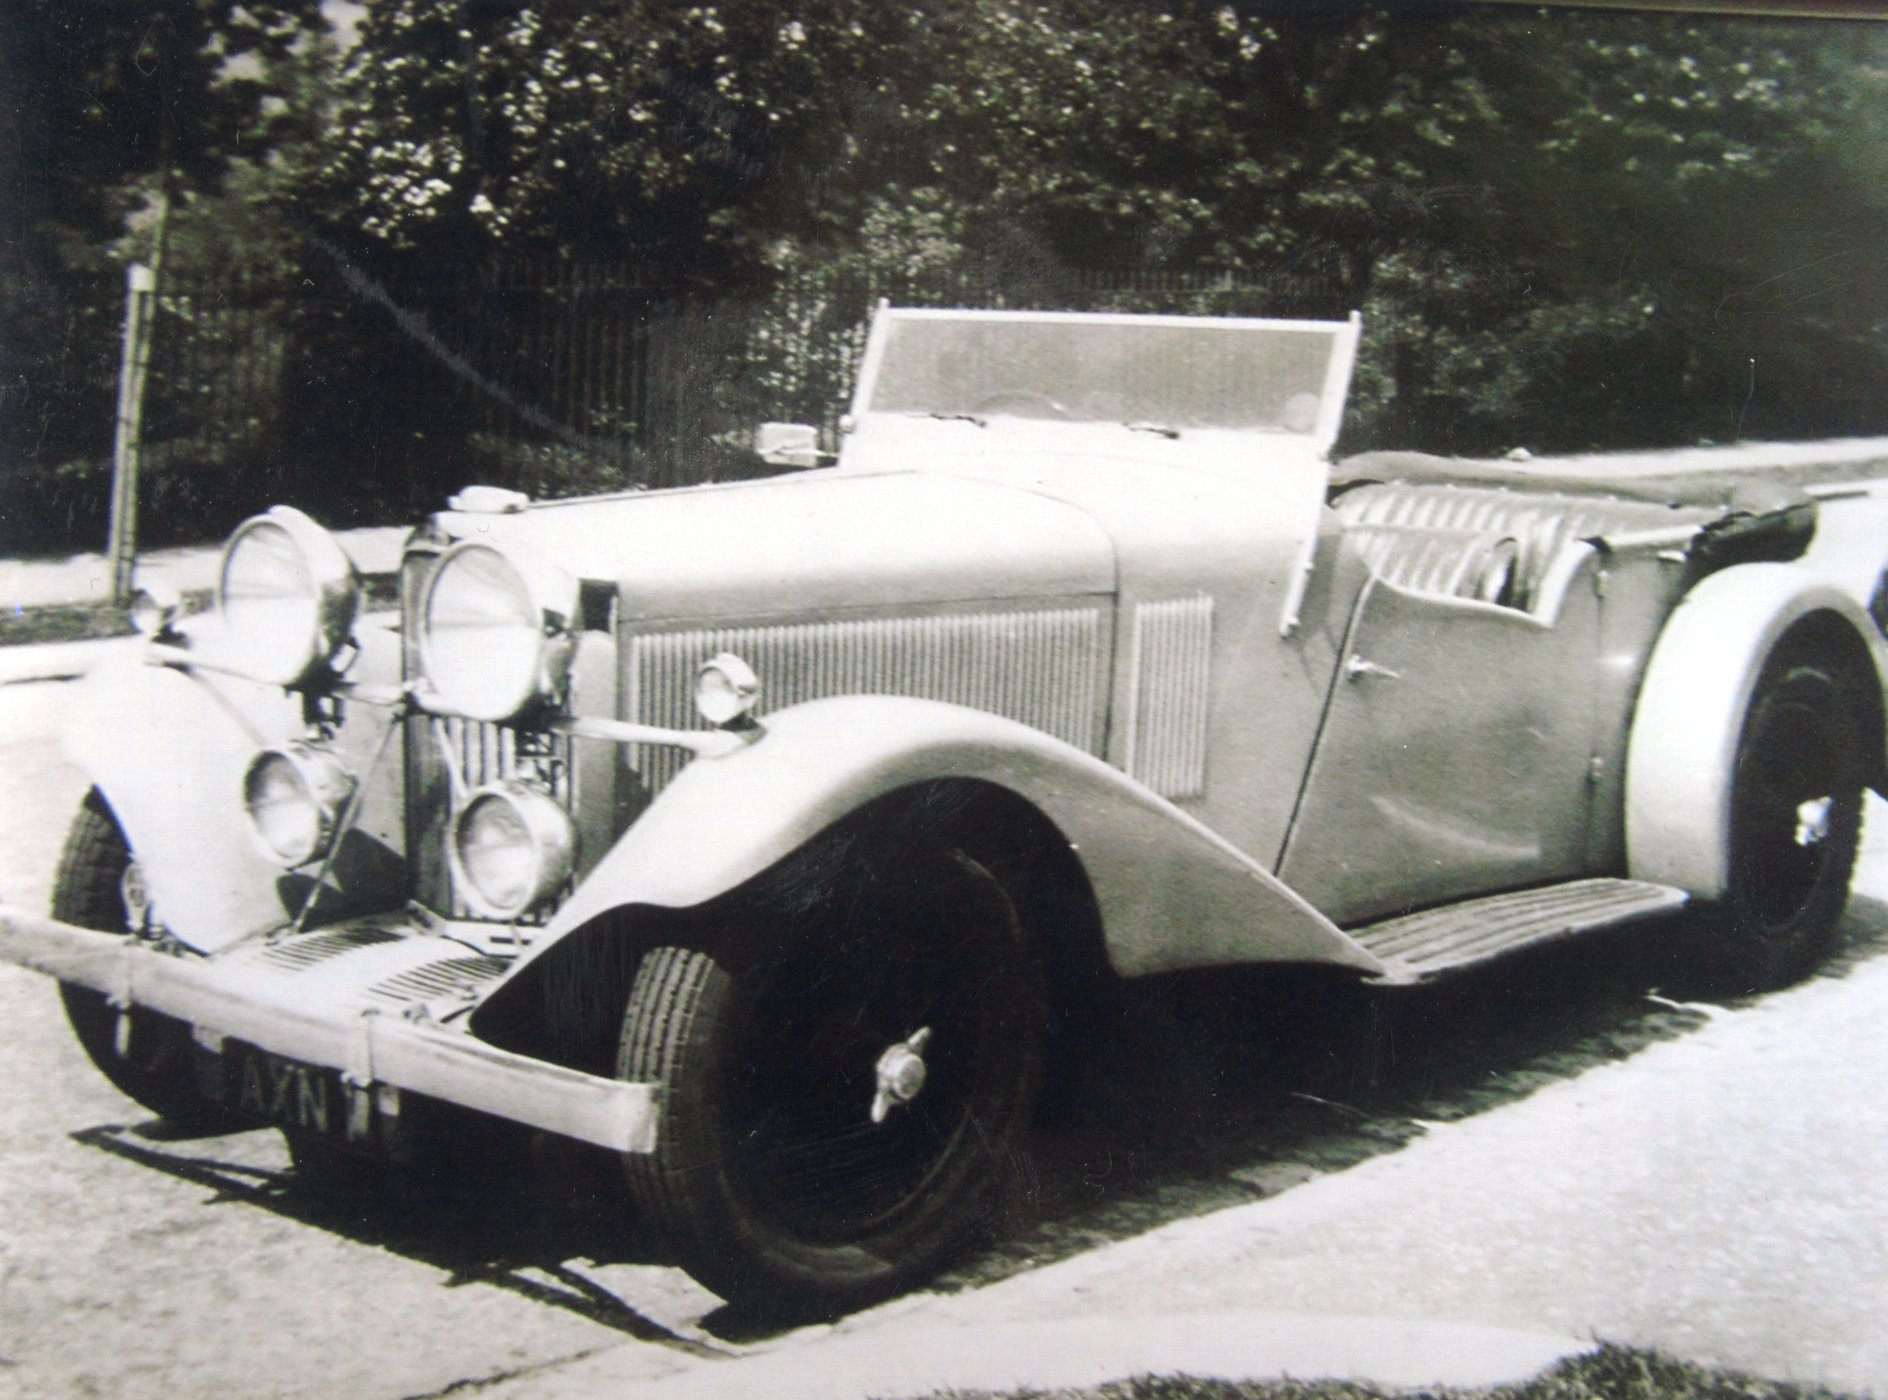 'AXN 1' whilst owned by the Lang family during the 1930s